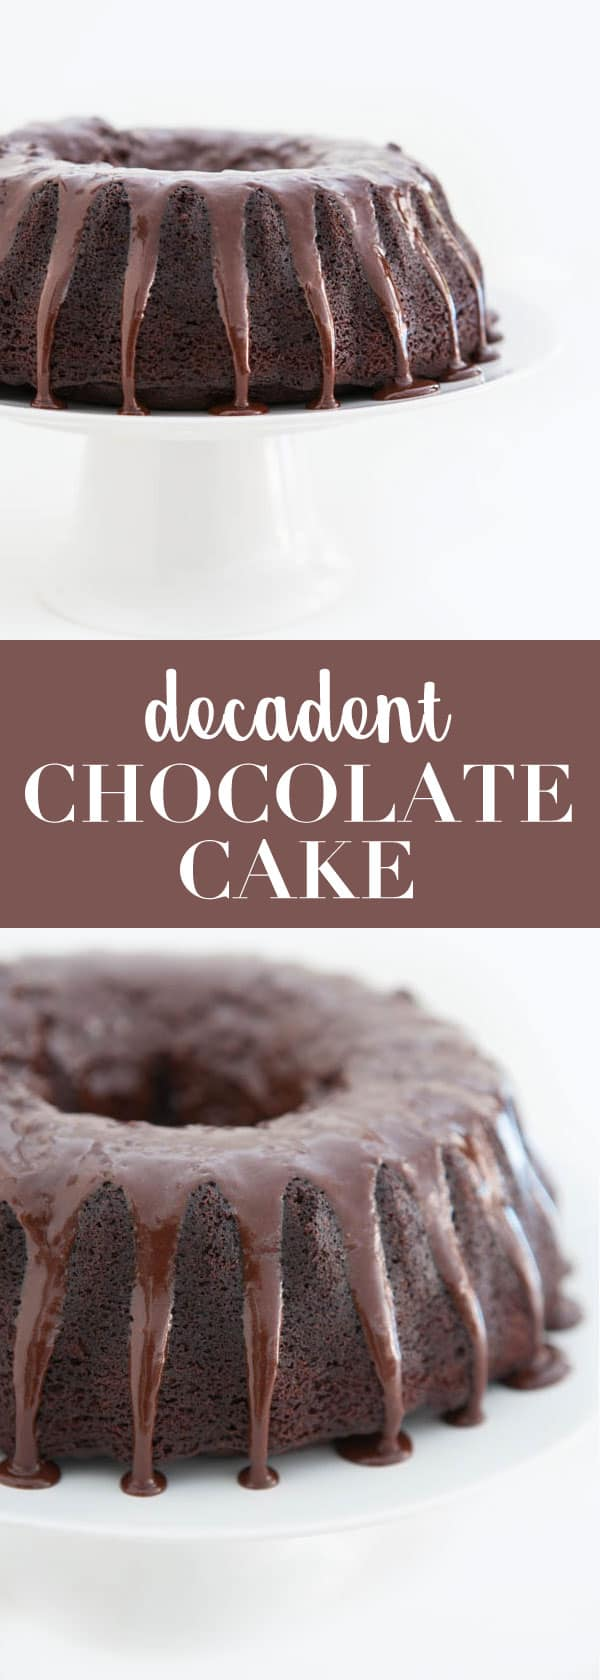 Decadent Chocolate Bundt Cake @EclecticEveryday